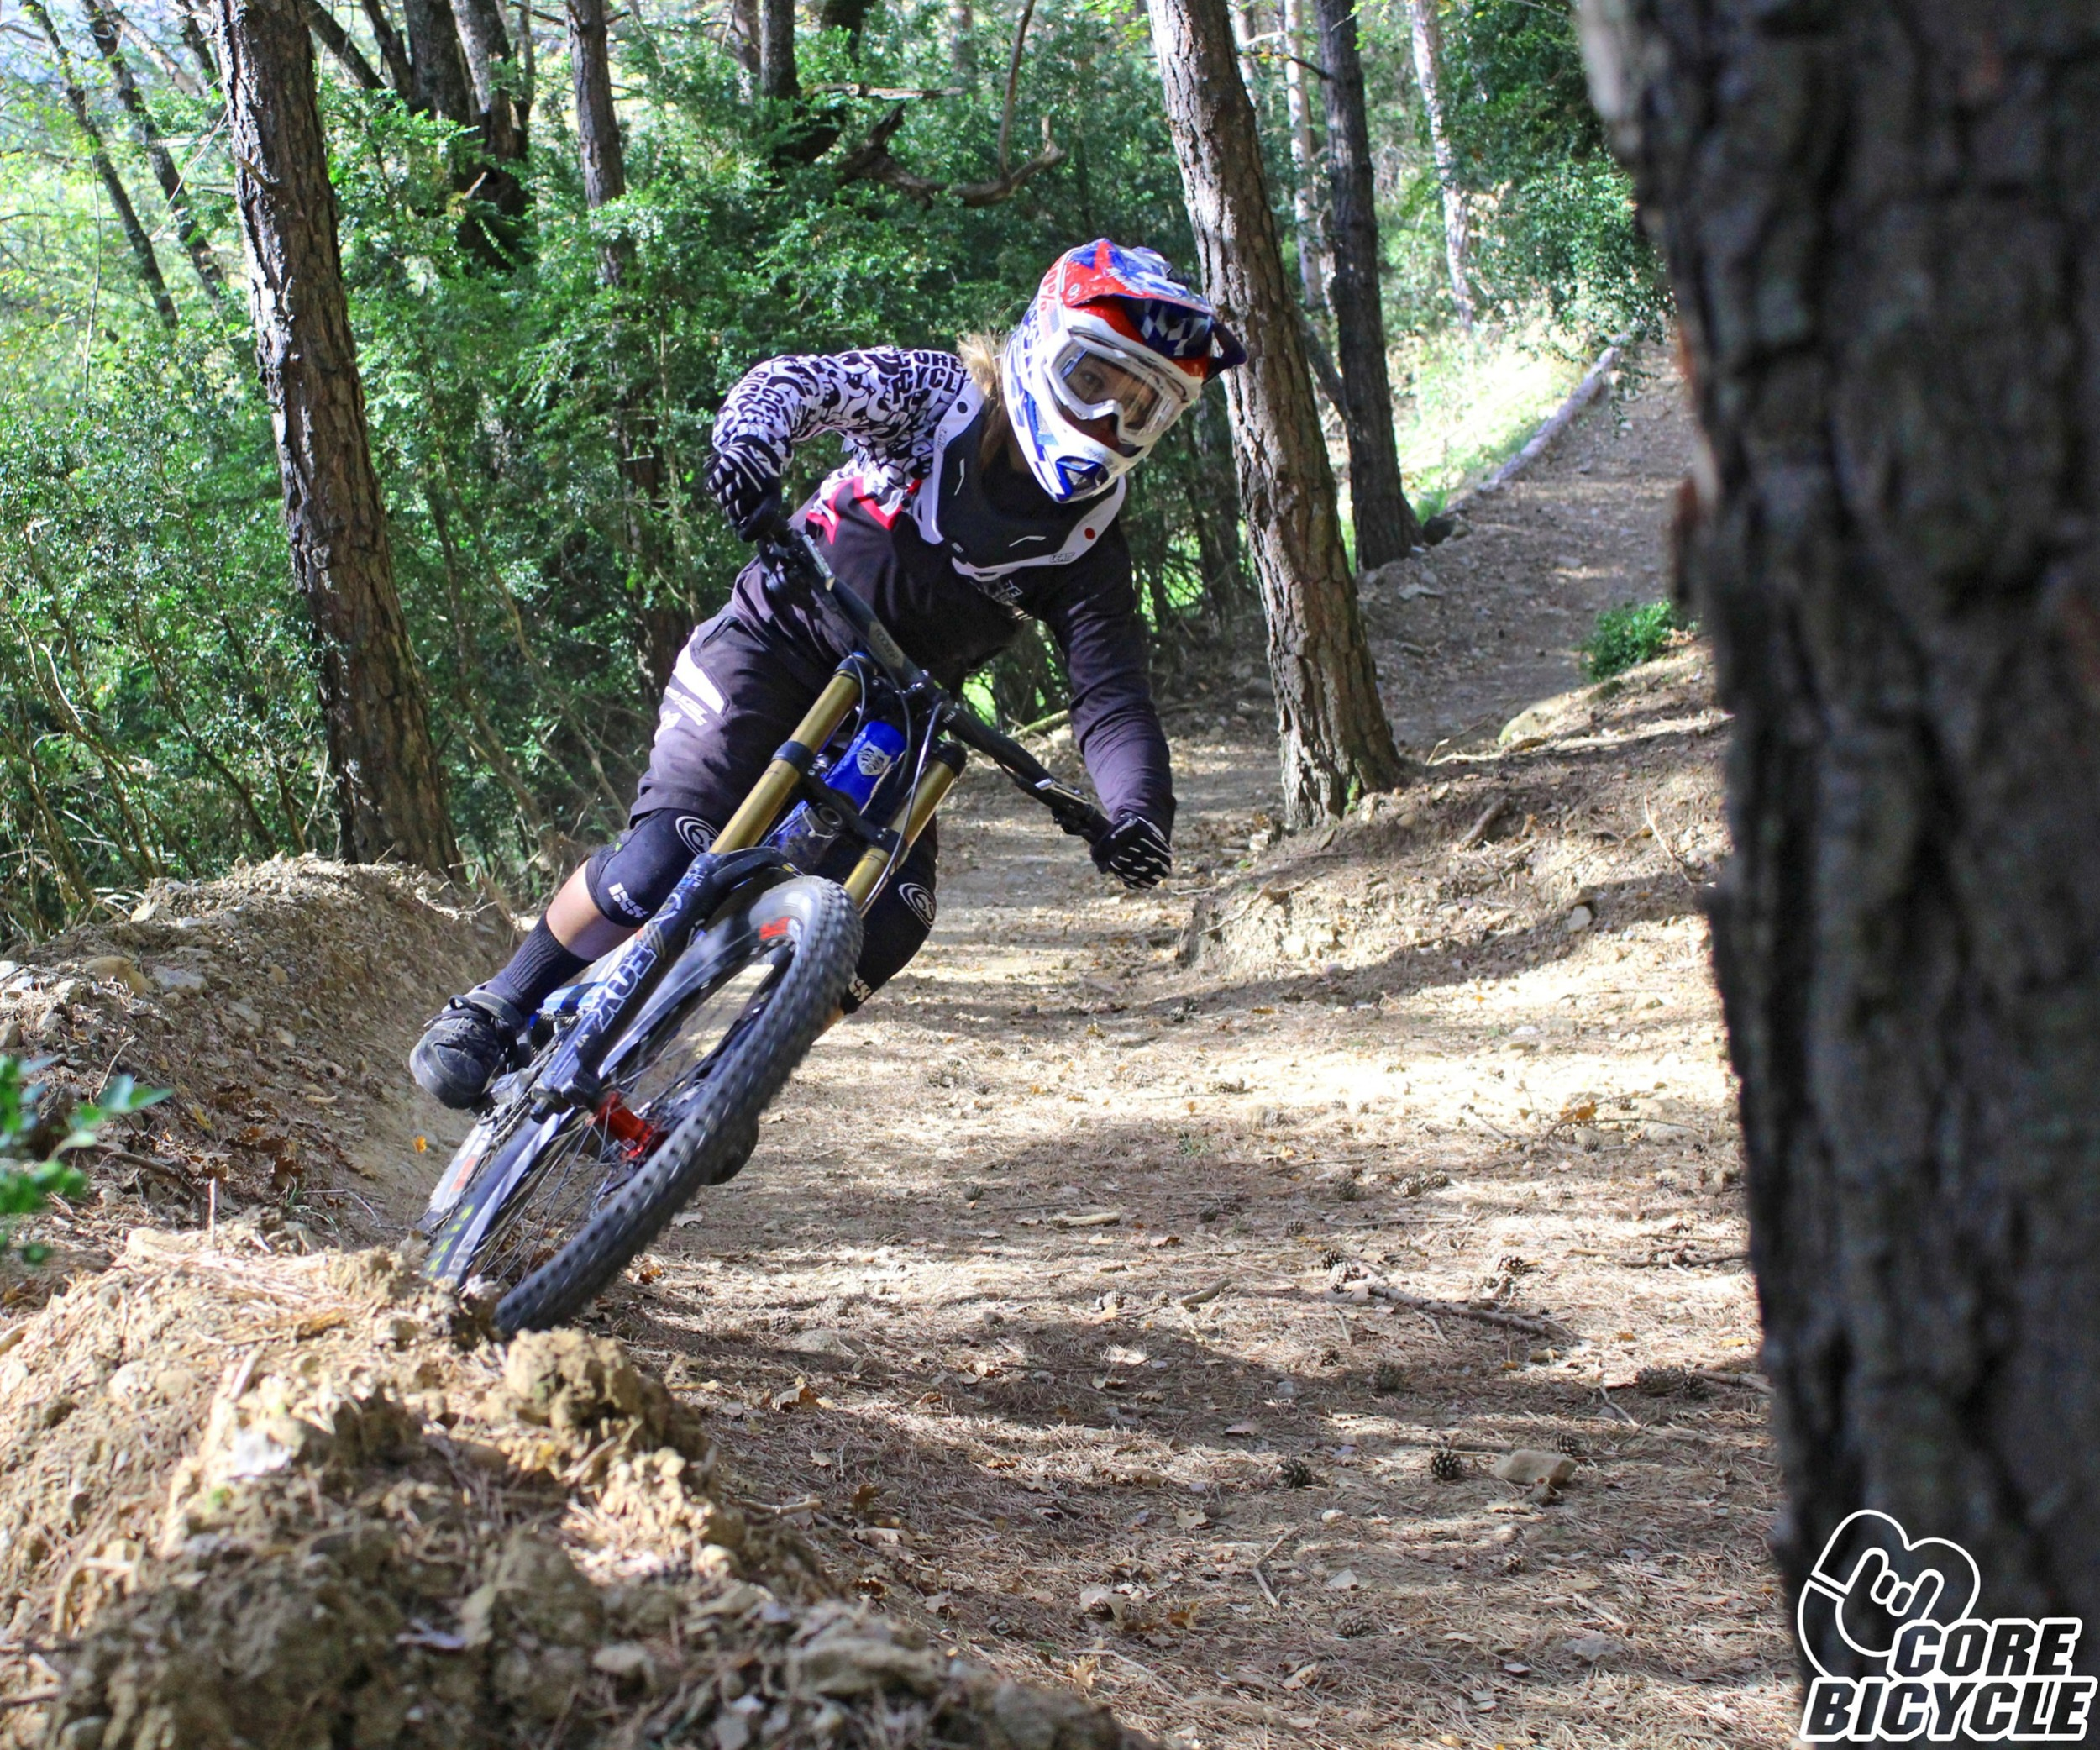 tracks de enduro y descenso en Biescas